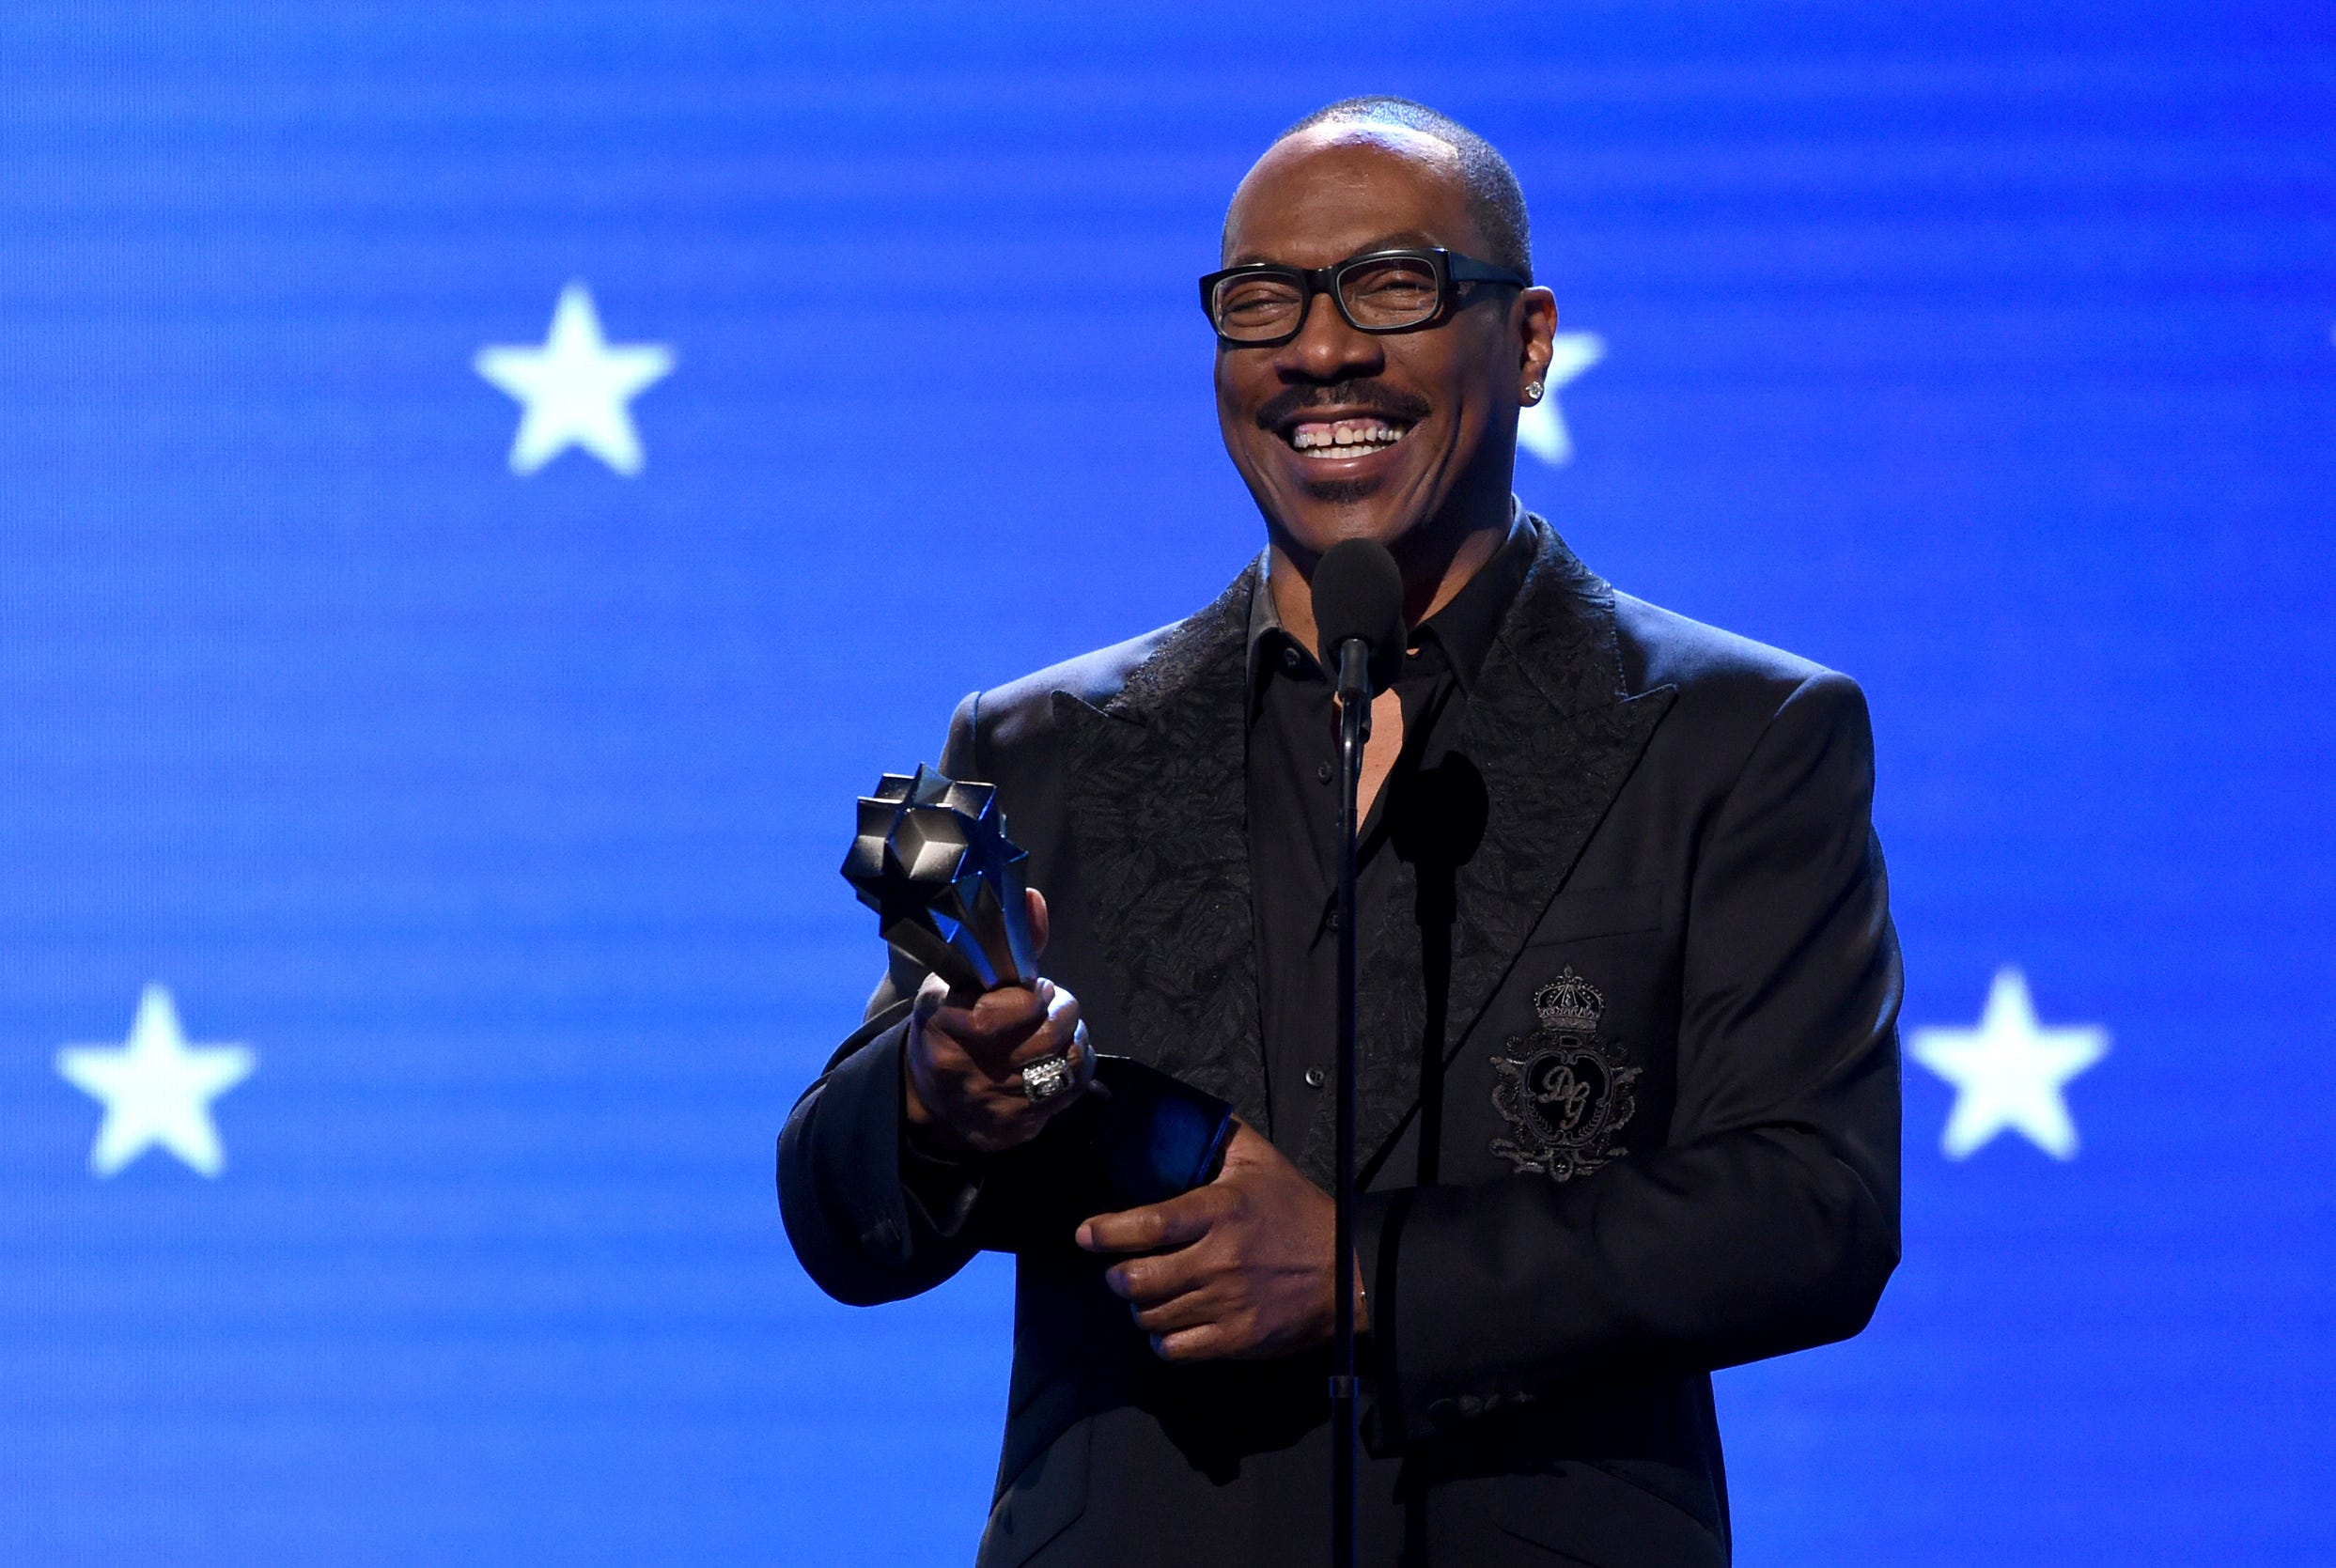 Eddie Murphy inducted into NAACP Image Awards Hall of Fame 1